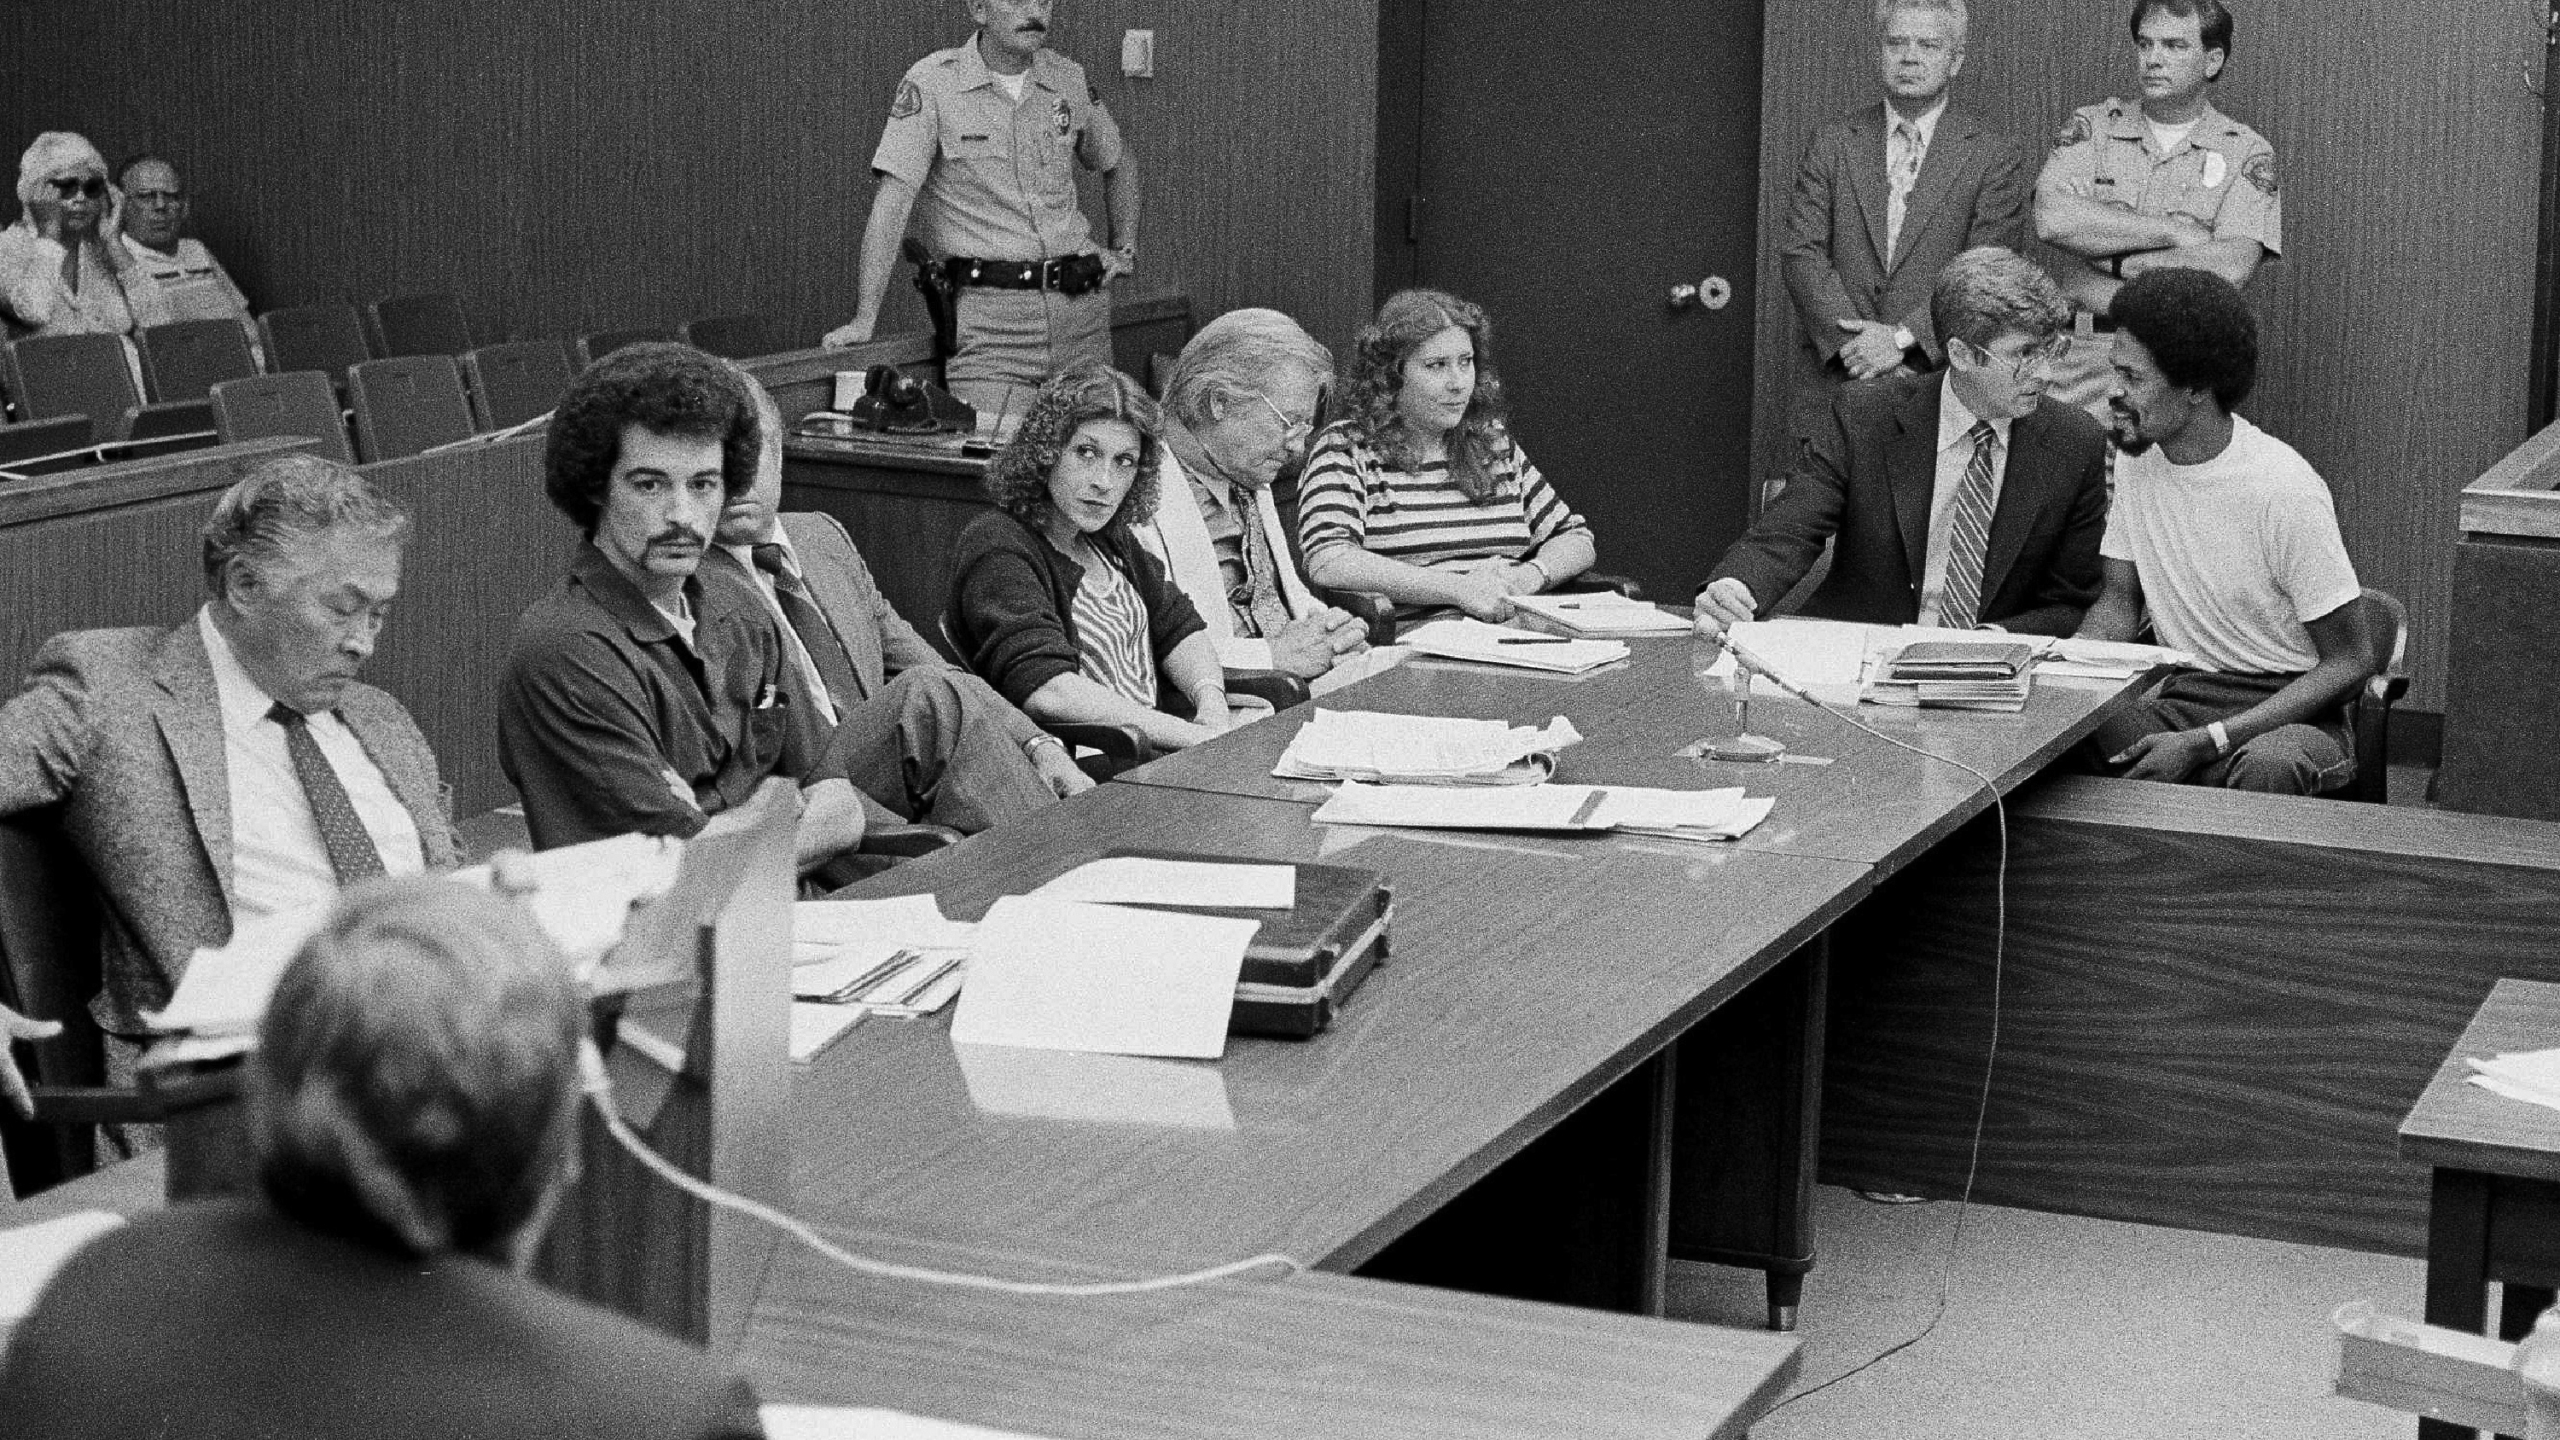 In this Aug. 22, 1983, file photo, four persons charged in connection with the June 2, 1983, fatal shooting of Los Angeles Police Officer Paul Verna sit with their attorneys during a preliminary hearing in a San Fernando, Calif., courtroom. Seated second from left to right, Kenneth Gay, an unidentified attorney, Robin Gay, attorney Elmer Docken, Pam Cummings, attorney Edward Rucker and Reynard Cummings. (AP Photo/Michael Tweed, File)